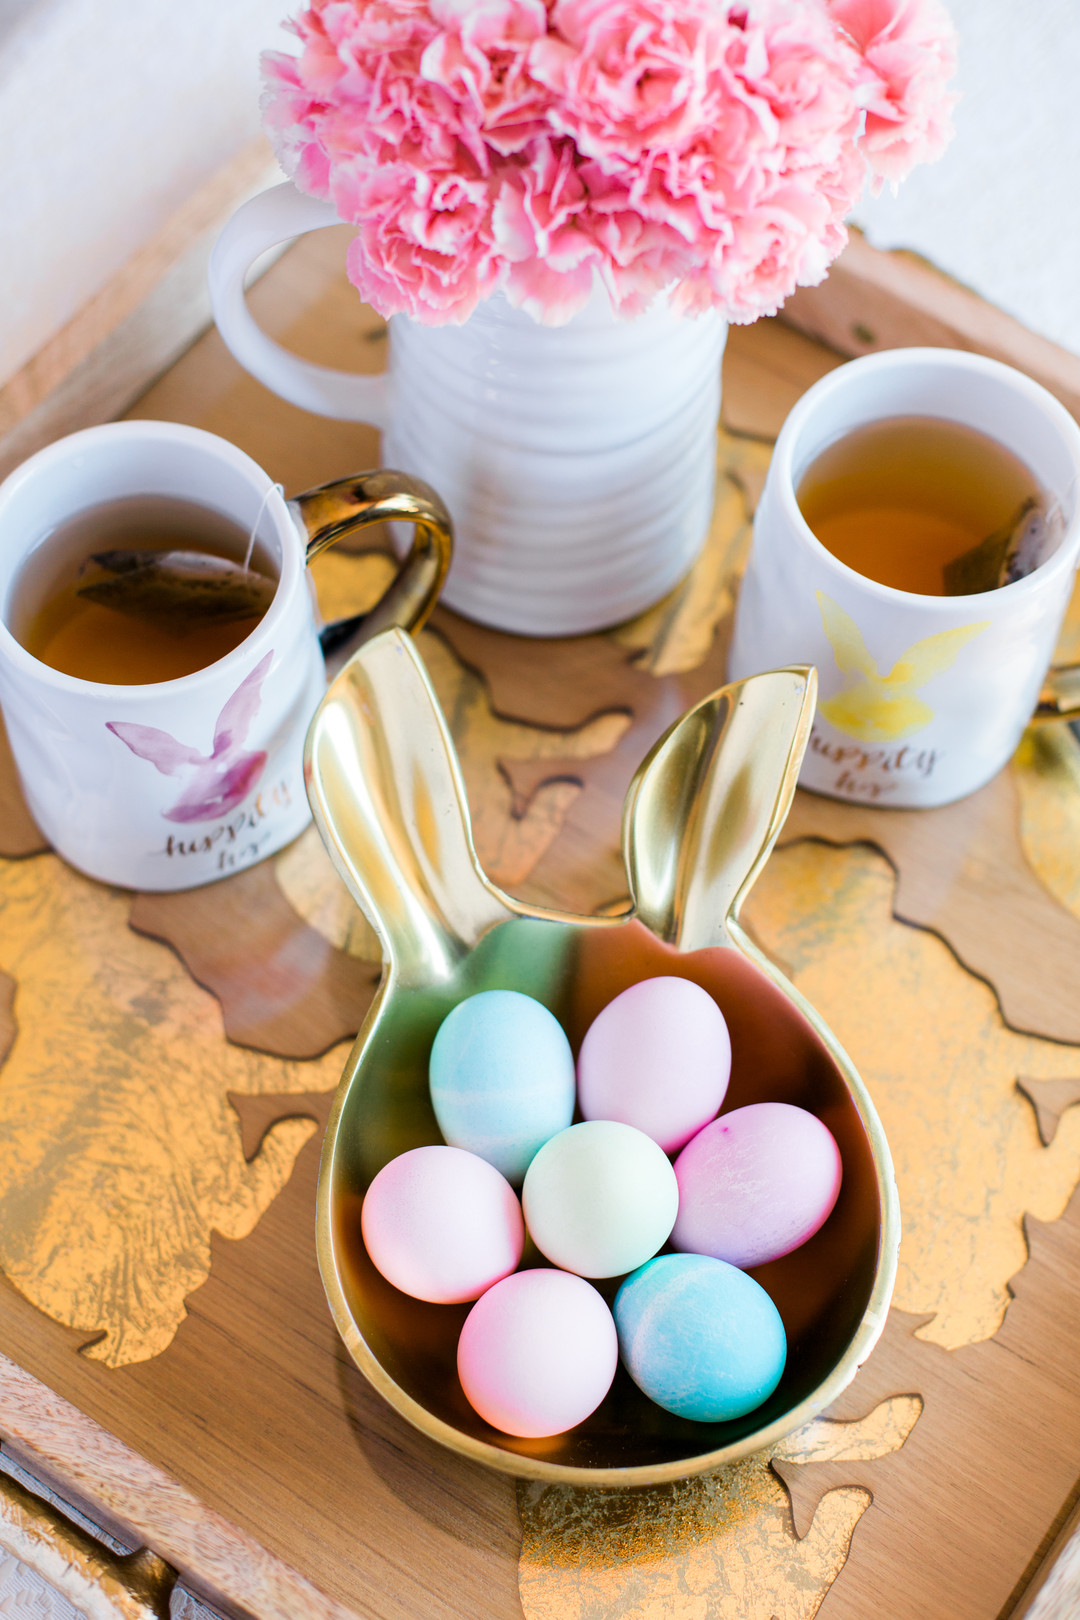 Staal_KristinaStaalPhotography_KristinaStaalPhotographyEasterTablescape201642_big Easy Entertaining: Easter Brunch Inspiration for Two